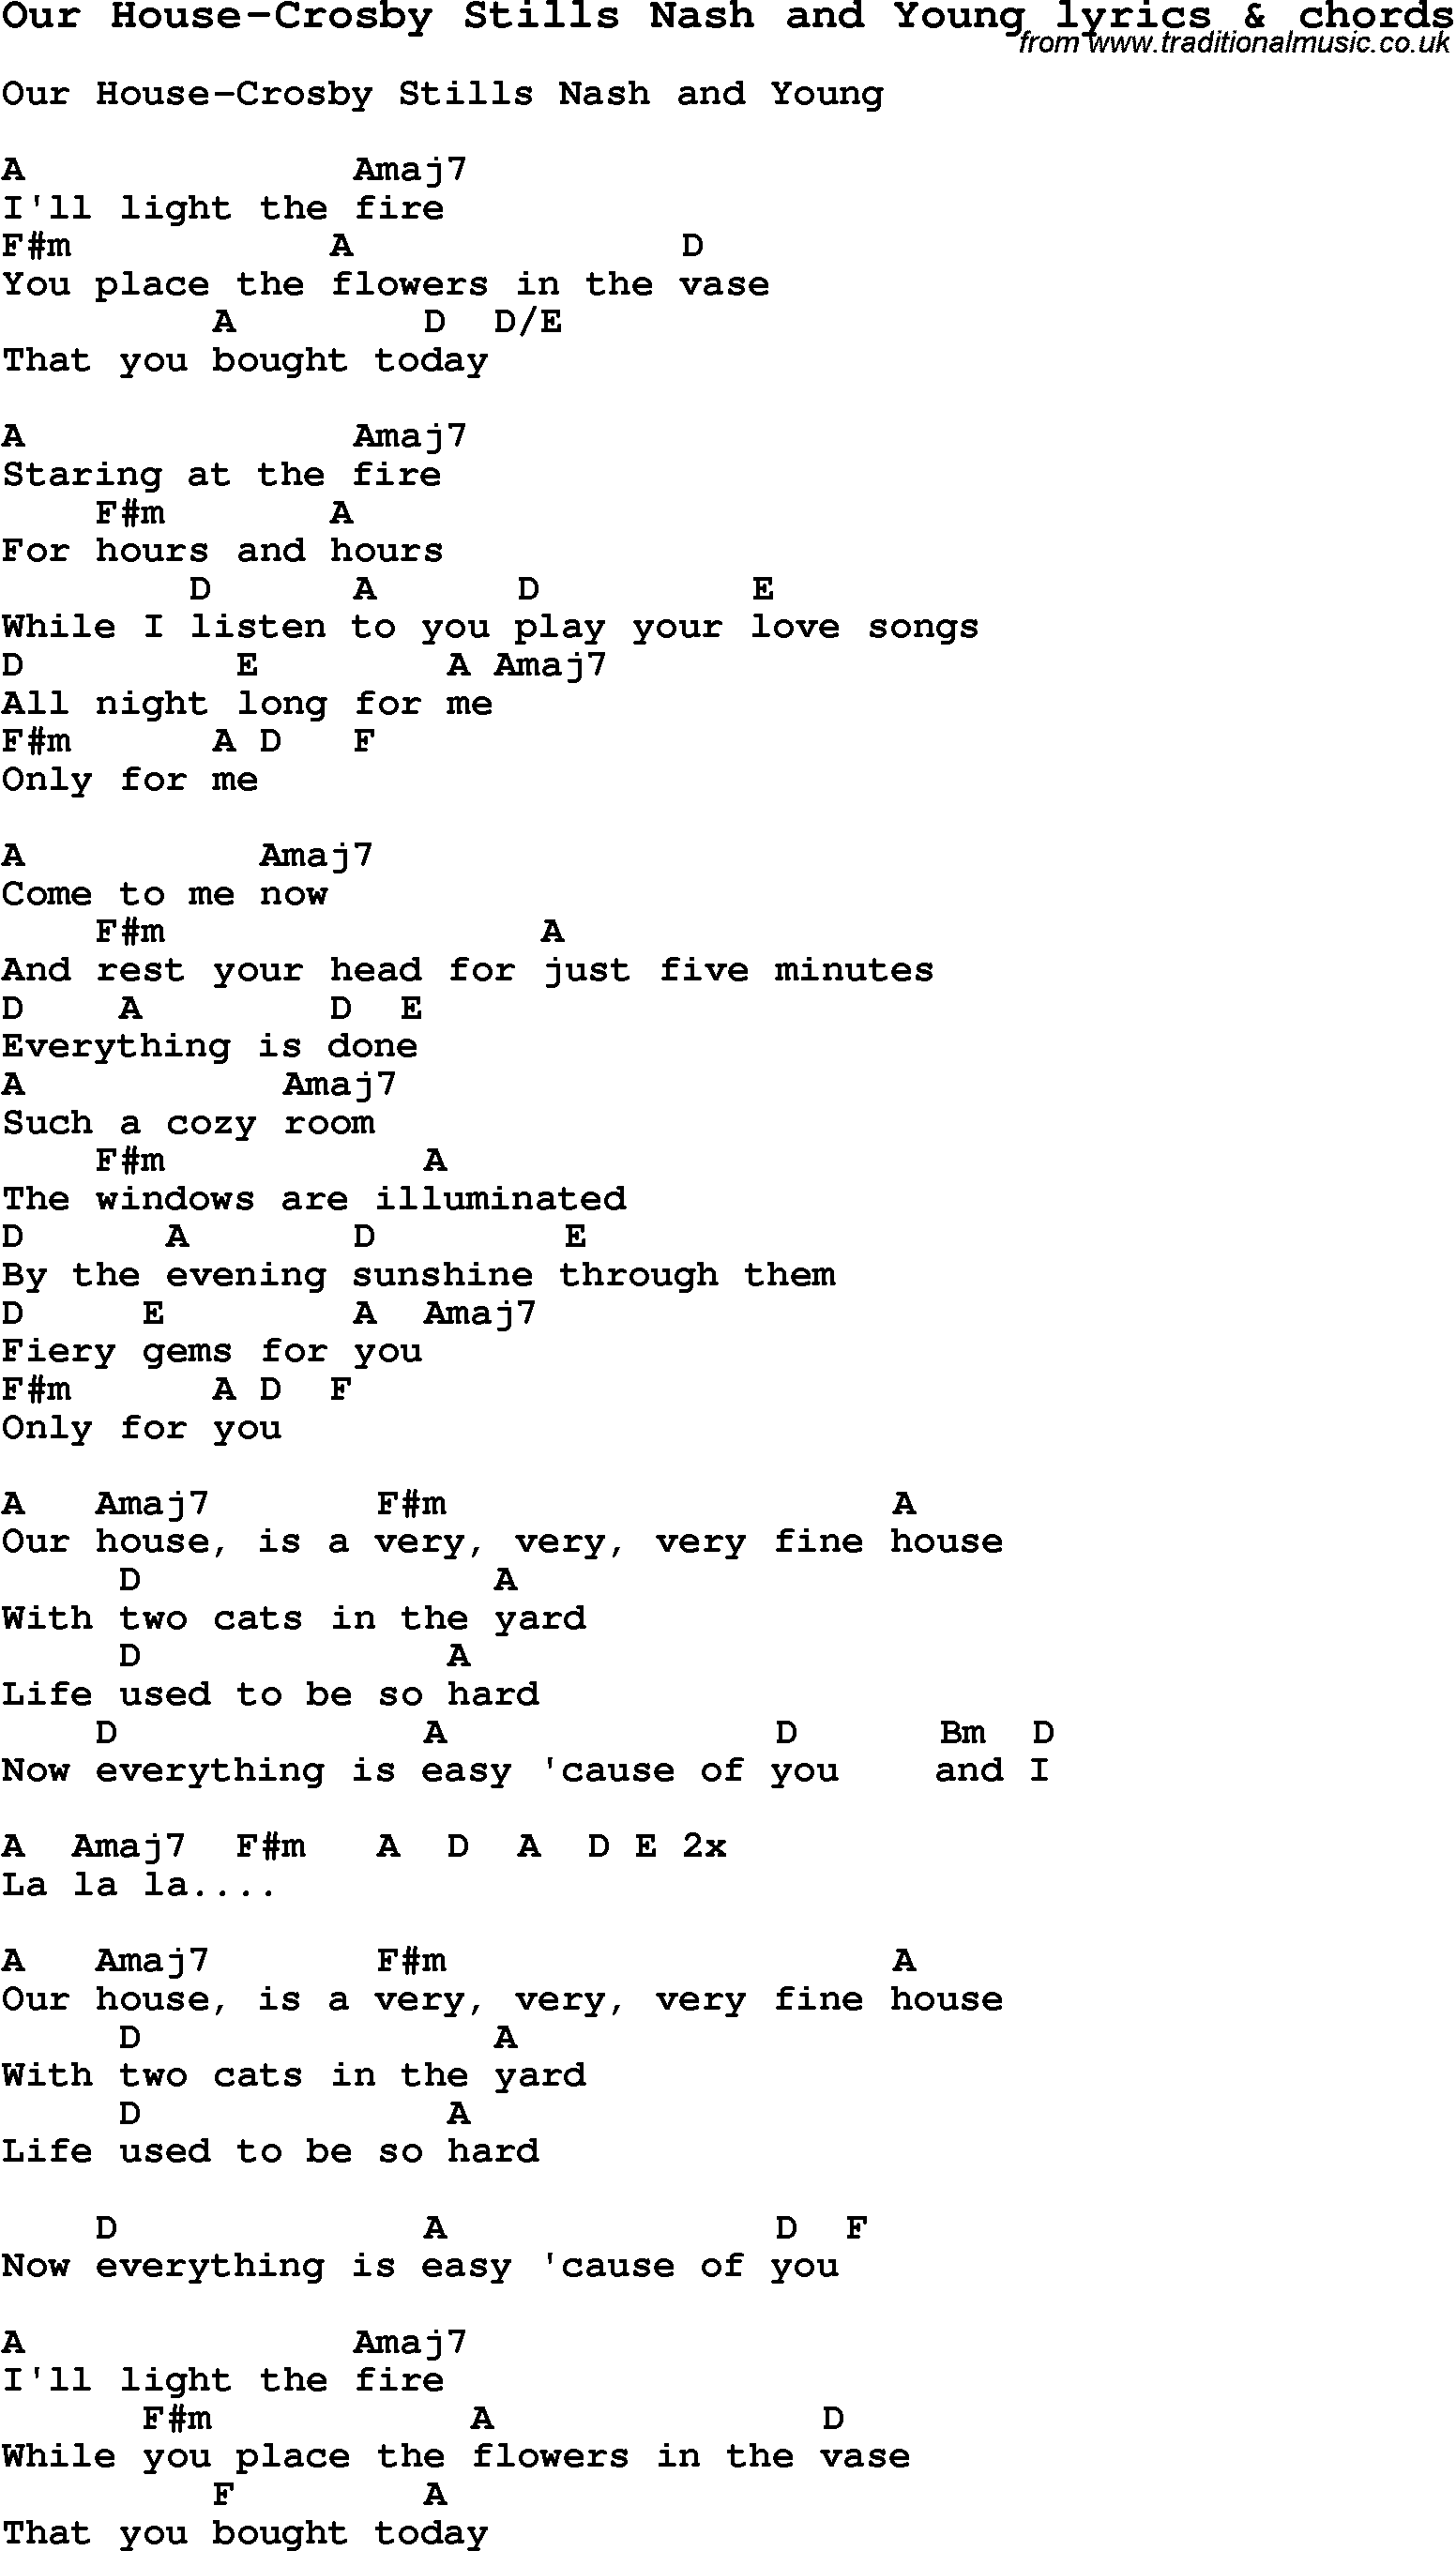 Love song lyrics forour house crosby stills nash and young with love song lyrics forour house crosby stills nash and young with chords hexwebz Images